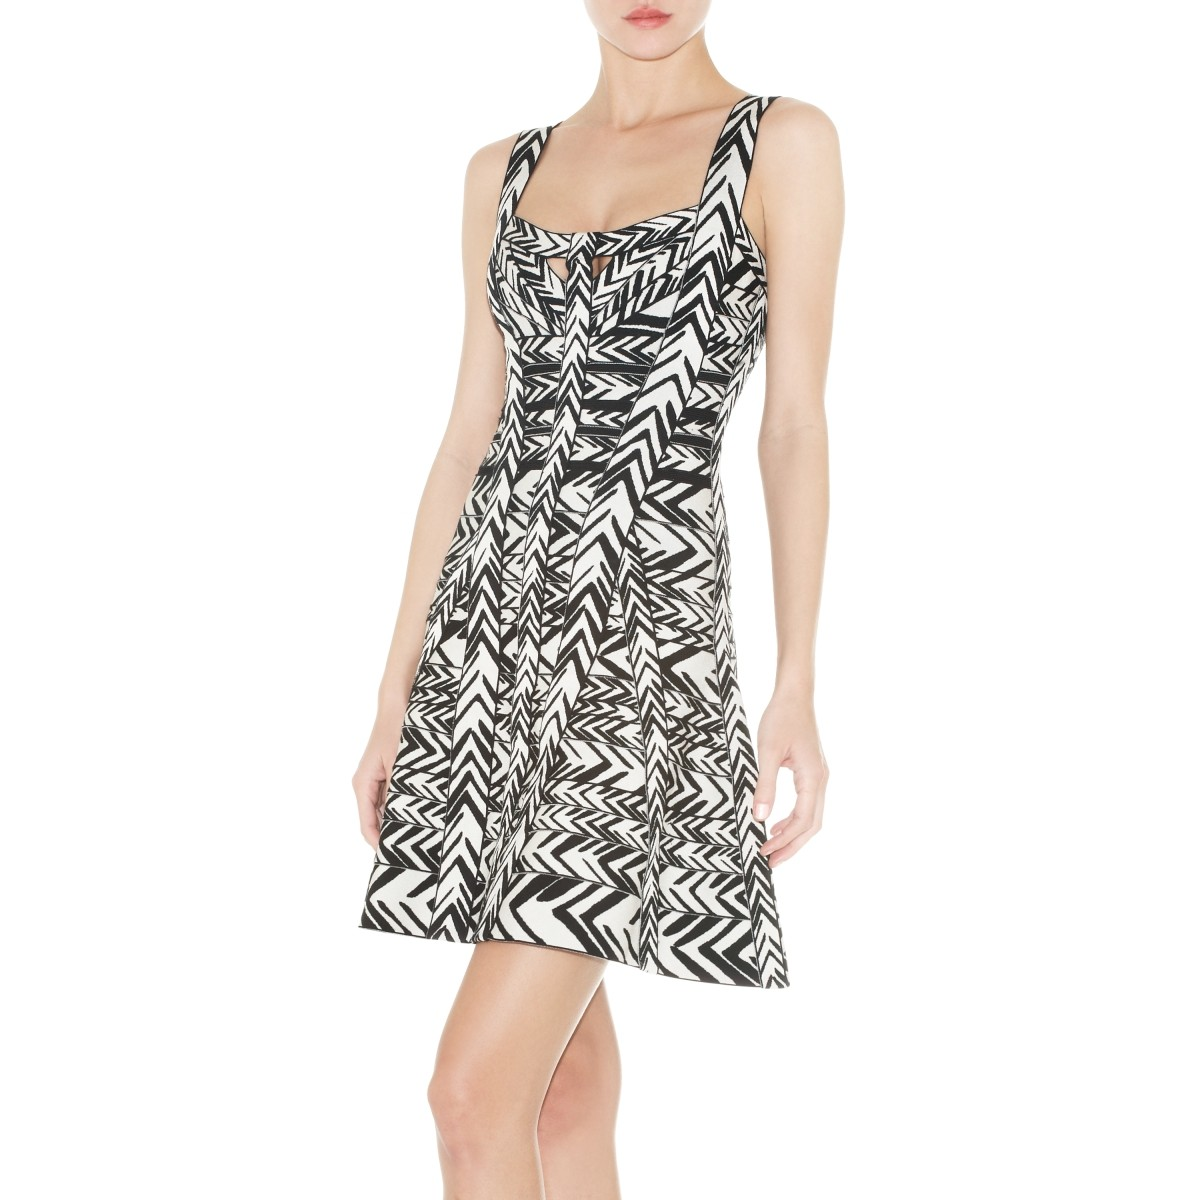 Herve Leger Sanne Jacquard Bandage Dress